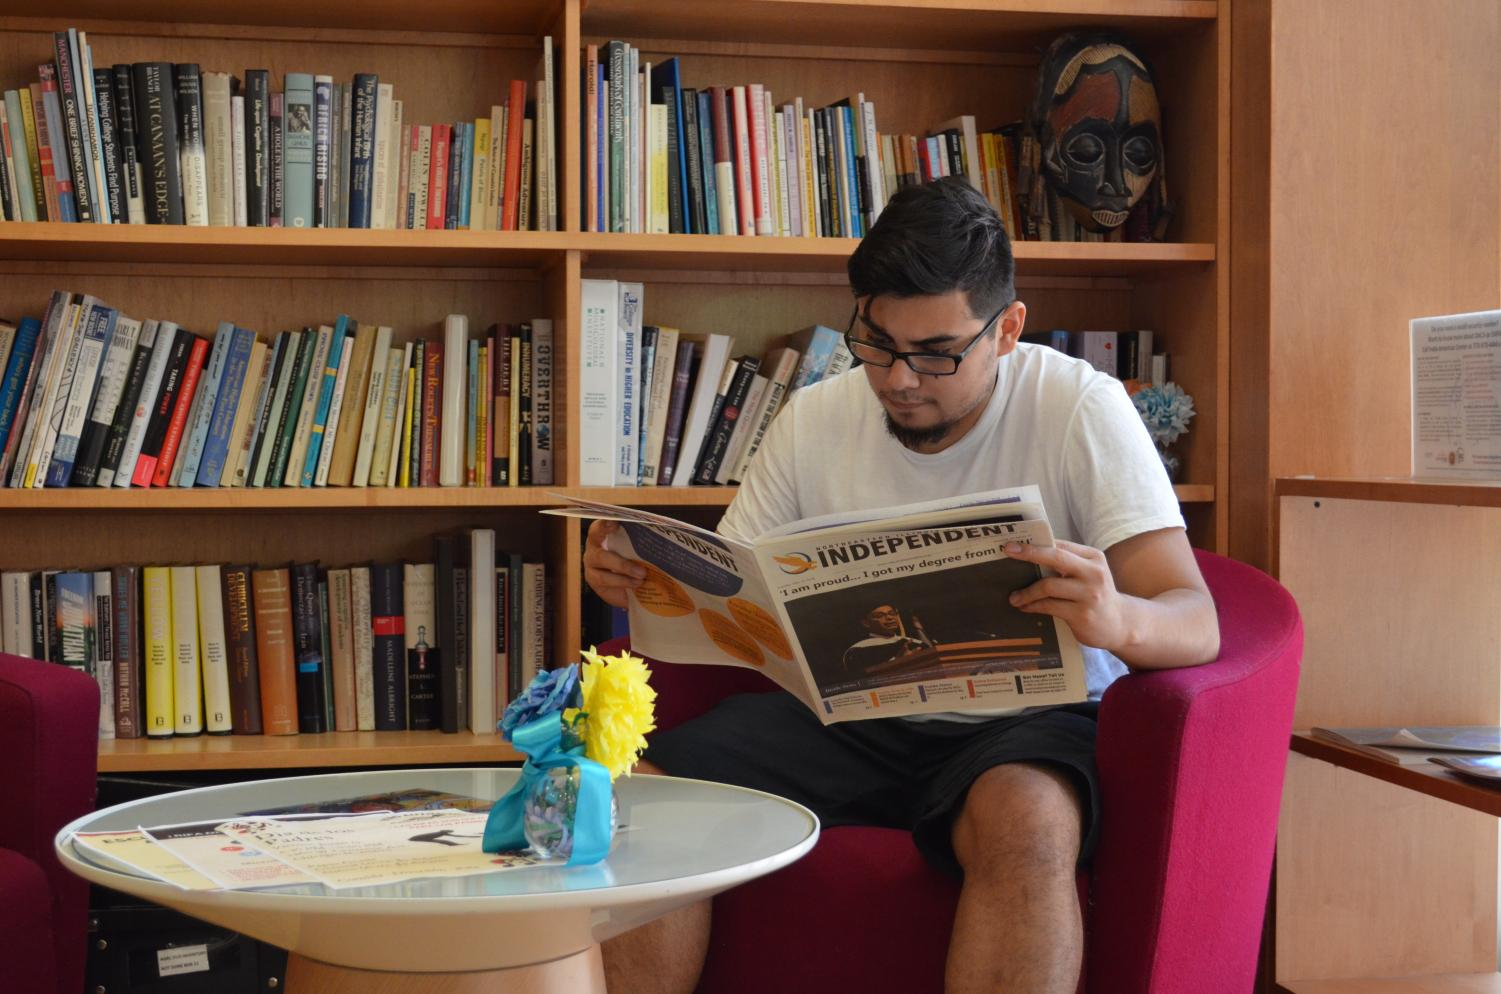 NEIU student Alfredo Palafox reads the Independent next to the Angelina Pedroso for Diversity and Intercultural Affairs Research Center